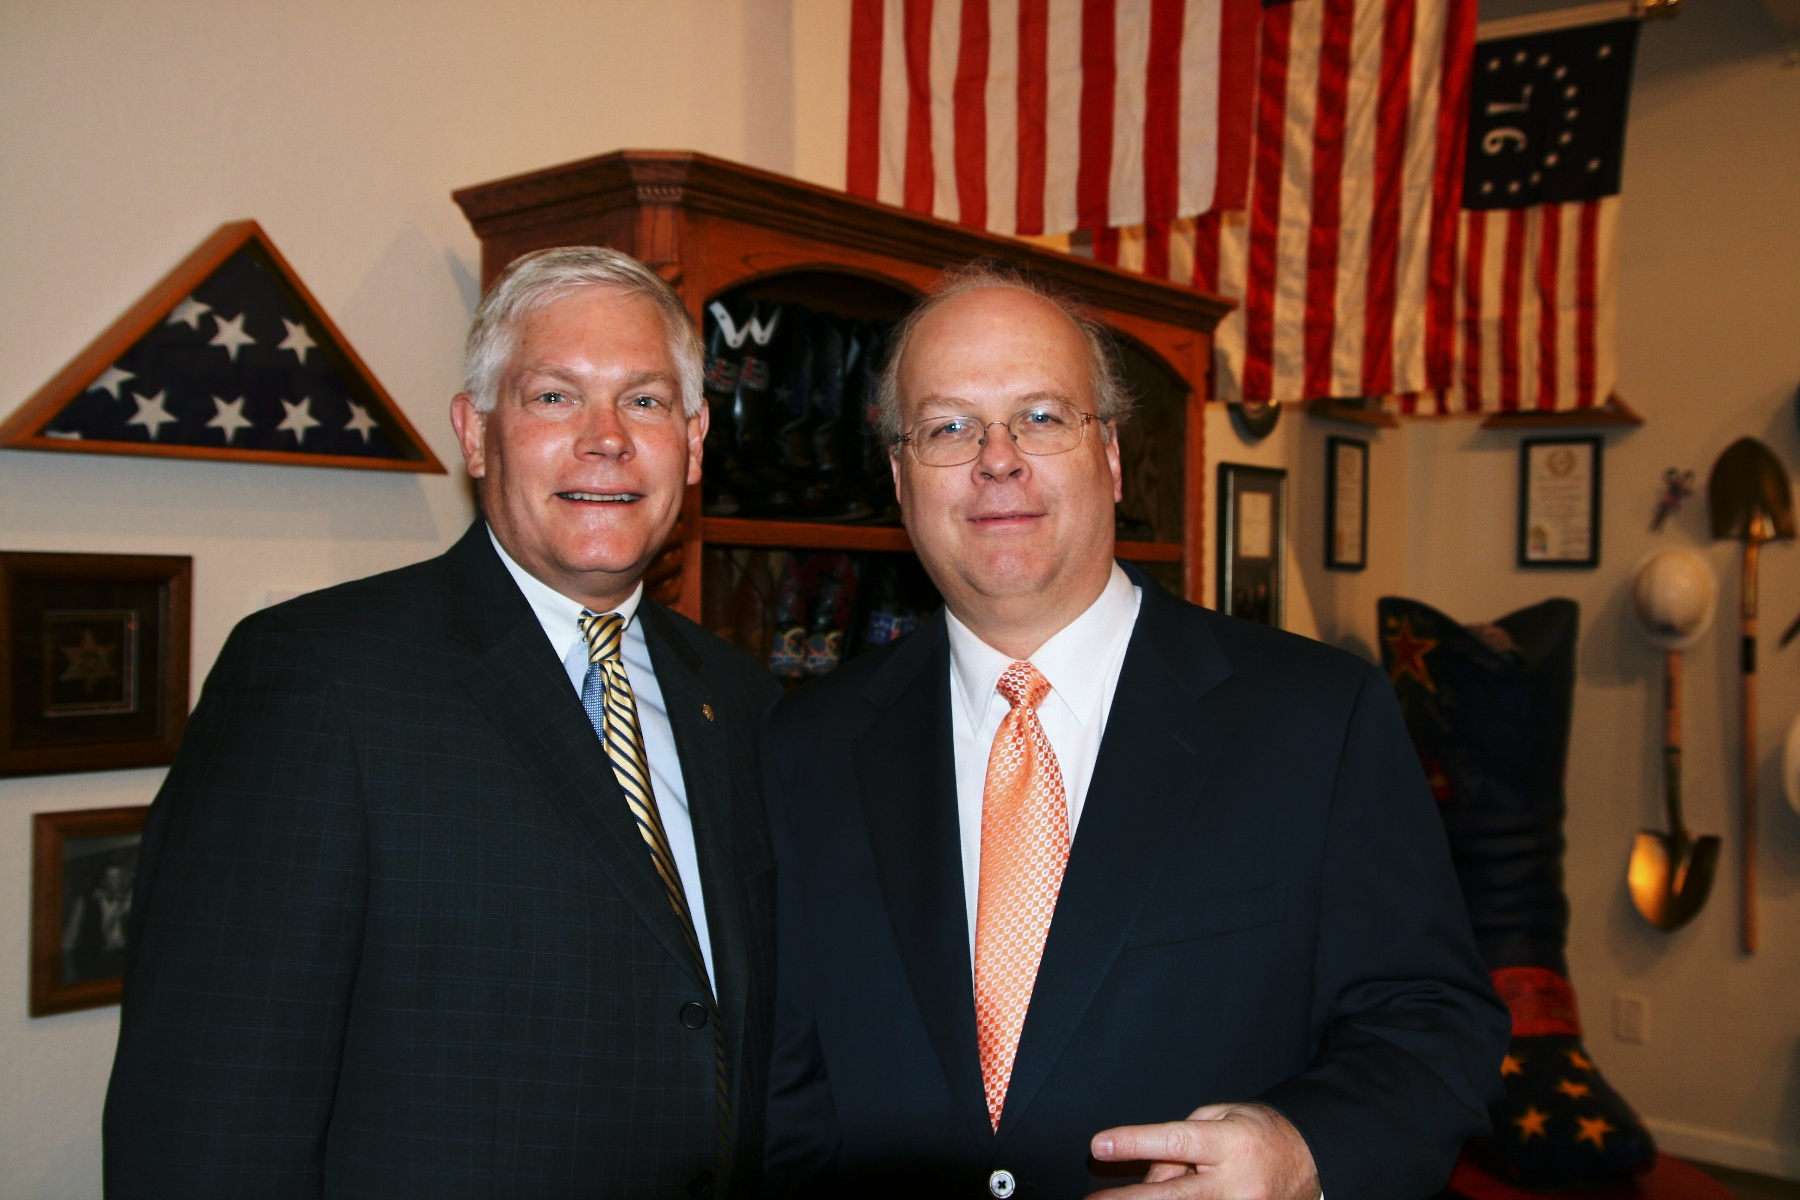 Congressman Pete Sessions and Karl Rove.